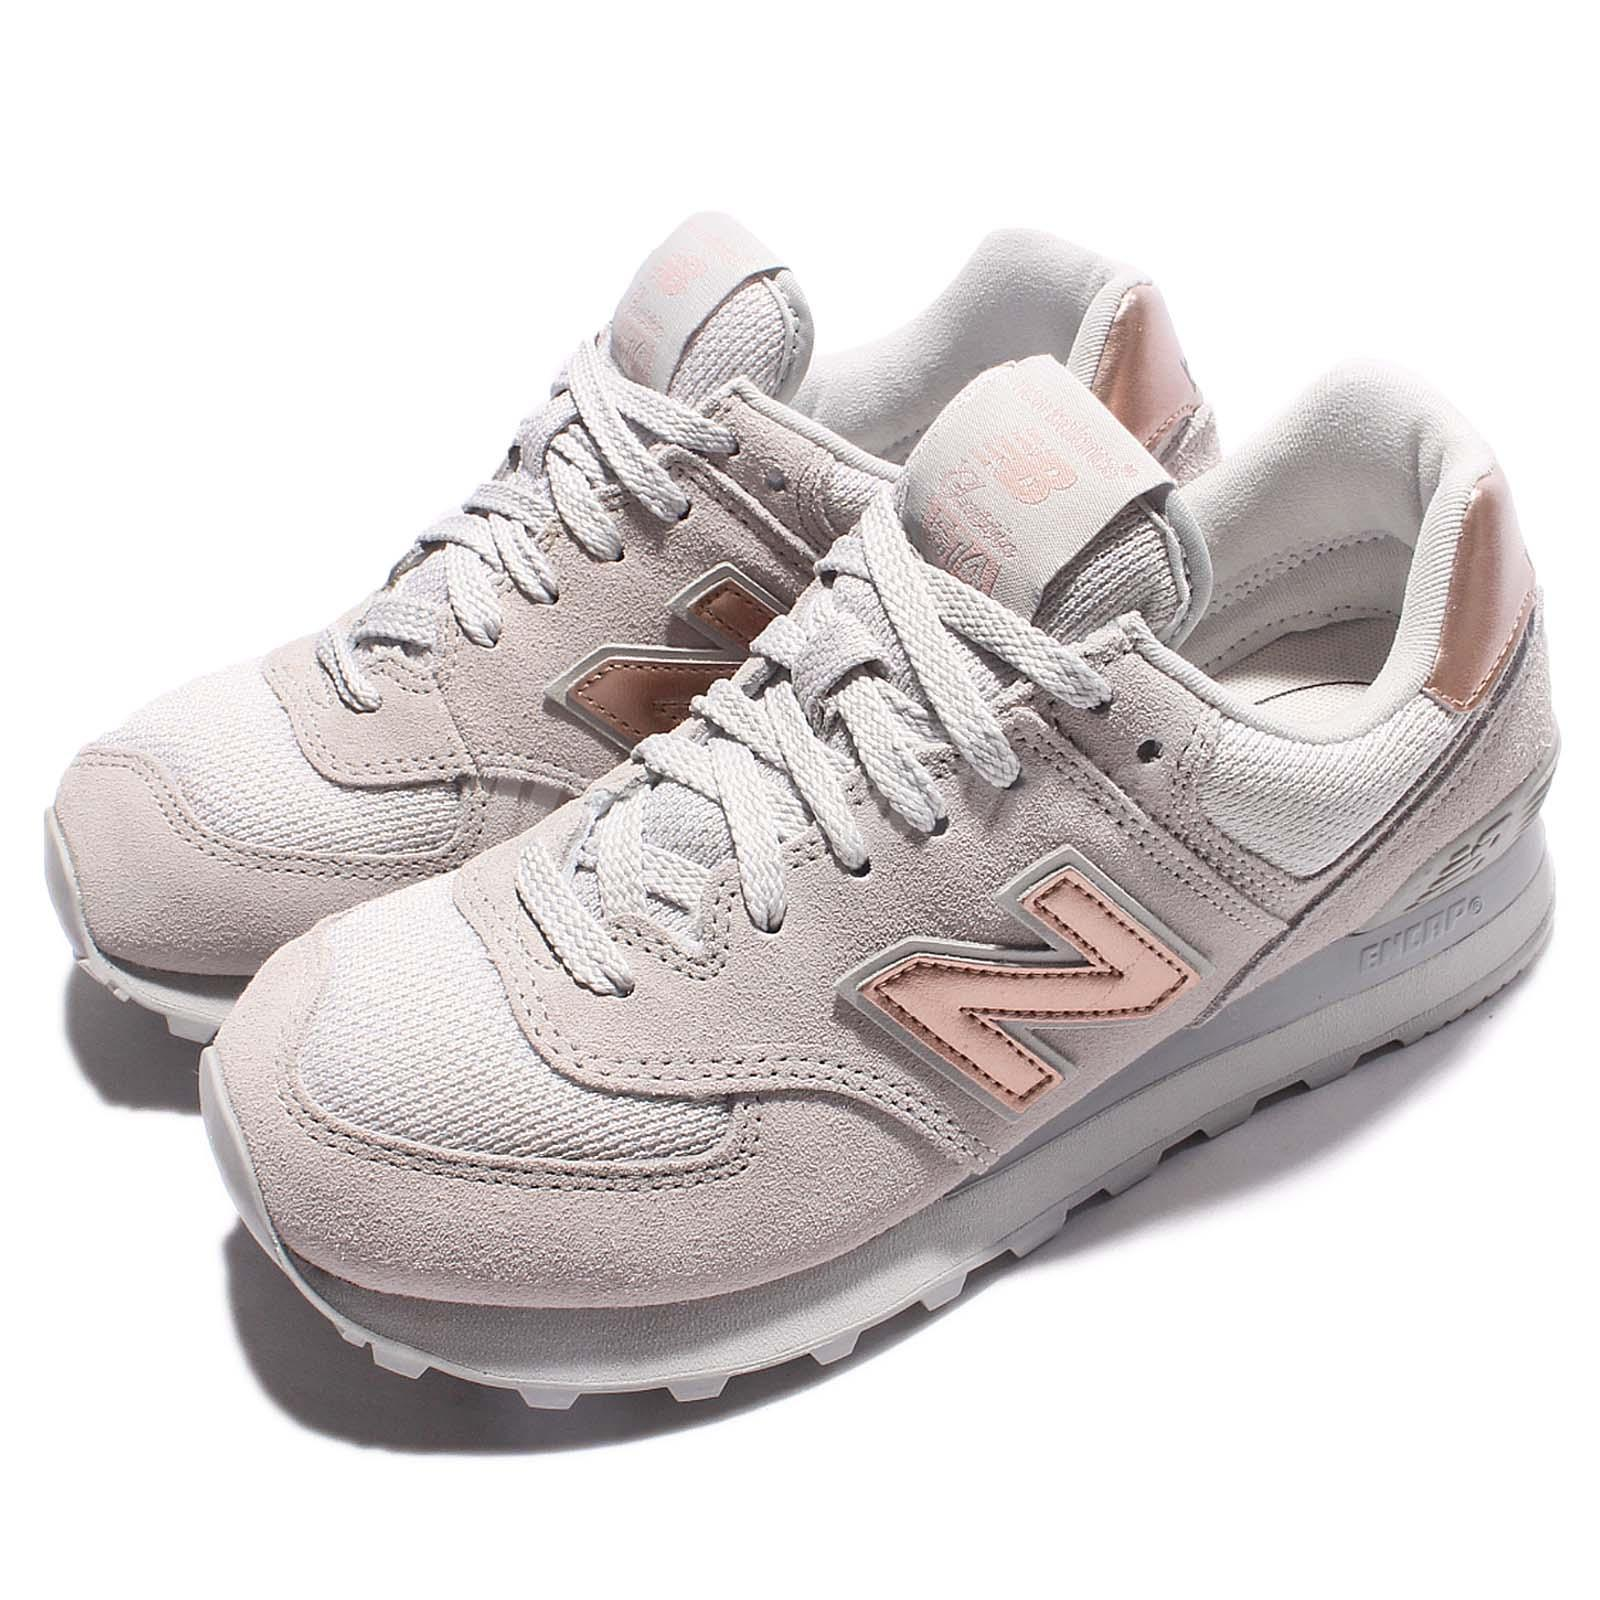 new balance wl574chc b grey gold women running shoes. Black Bedroom Furniture Sets. Home Design Ideas